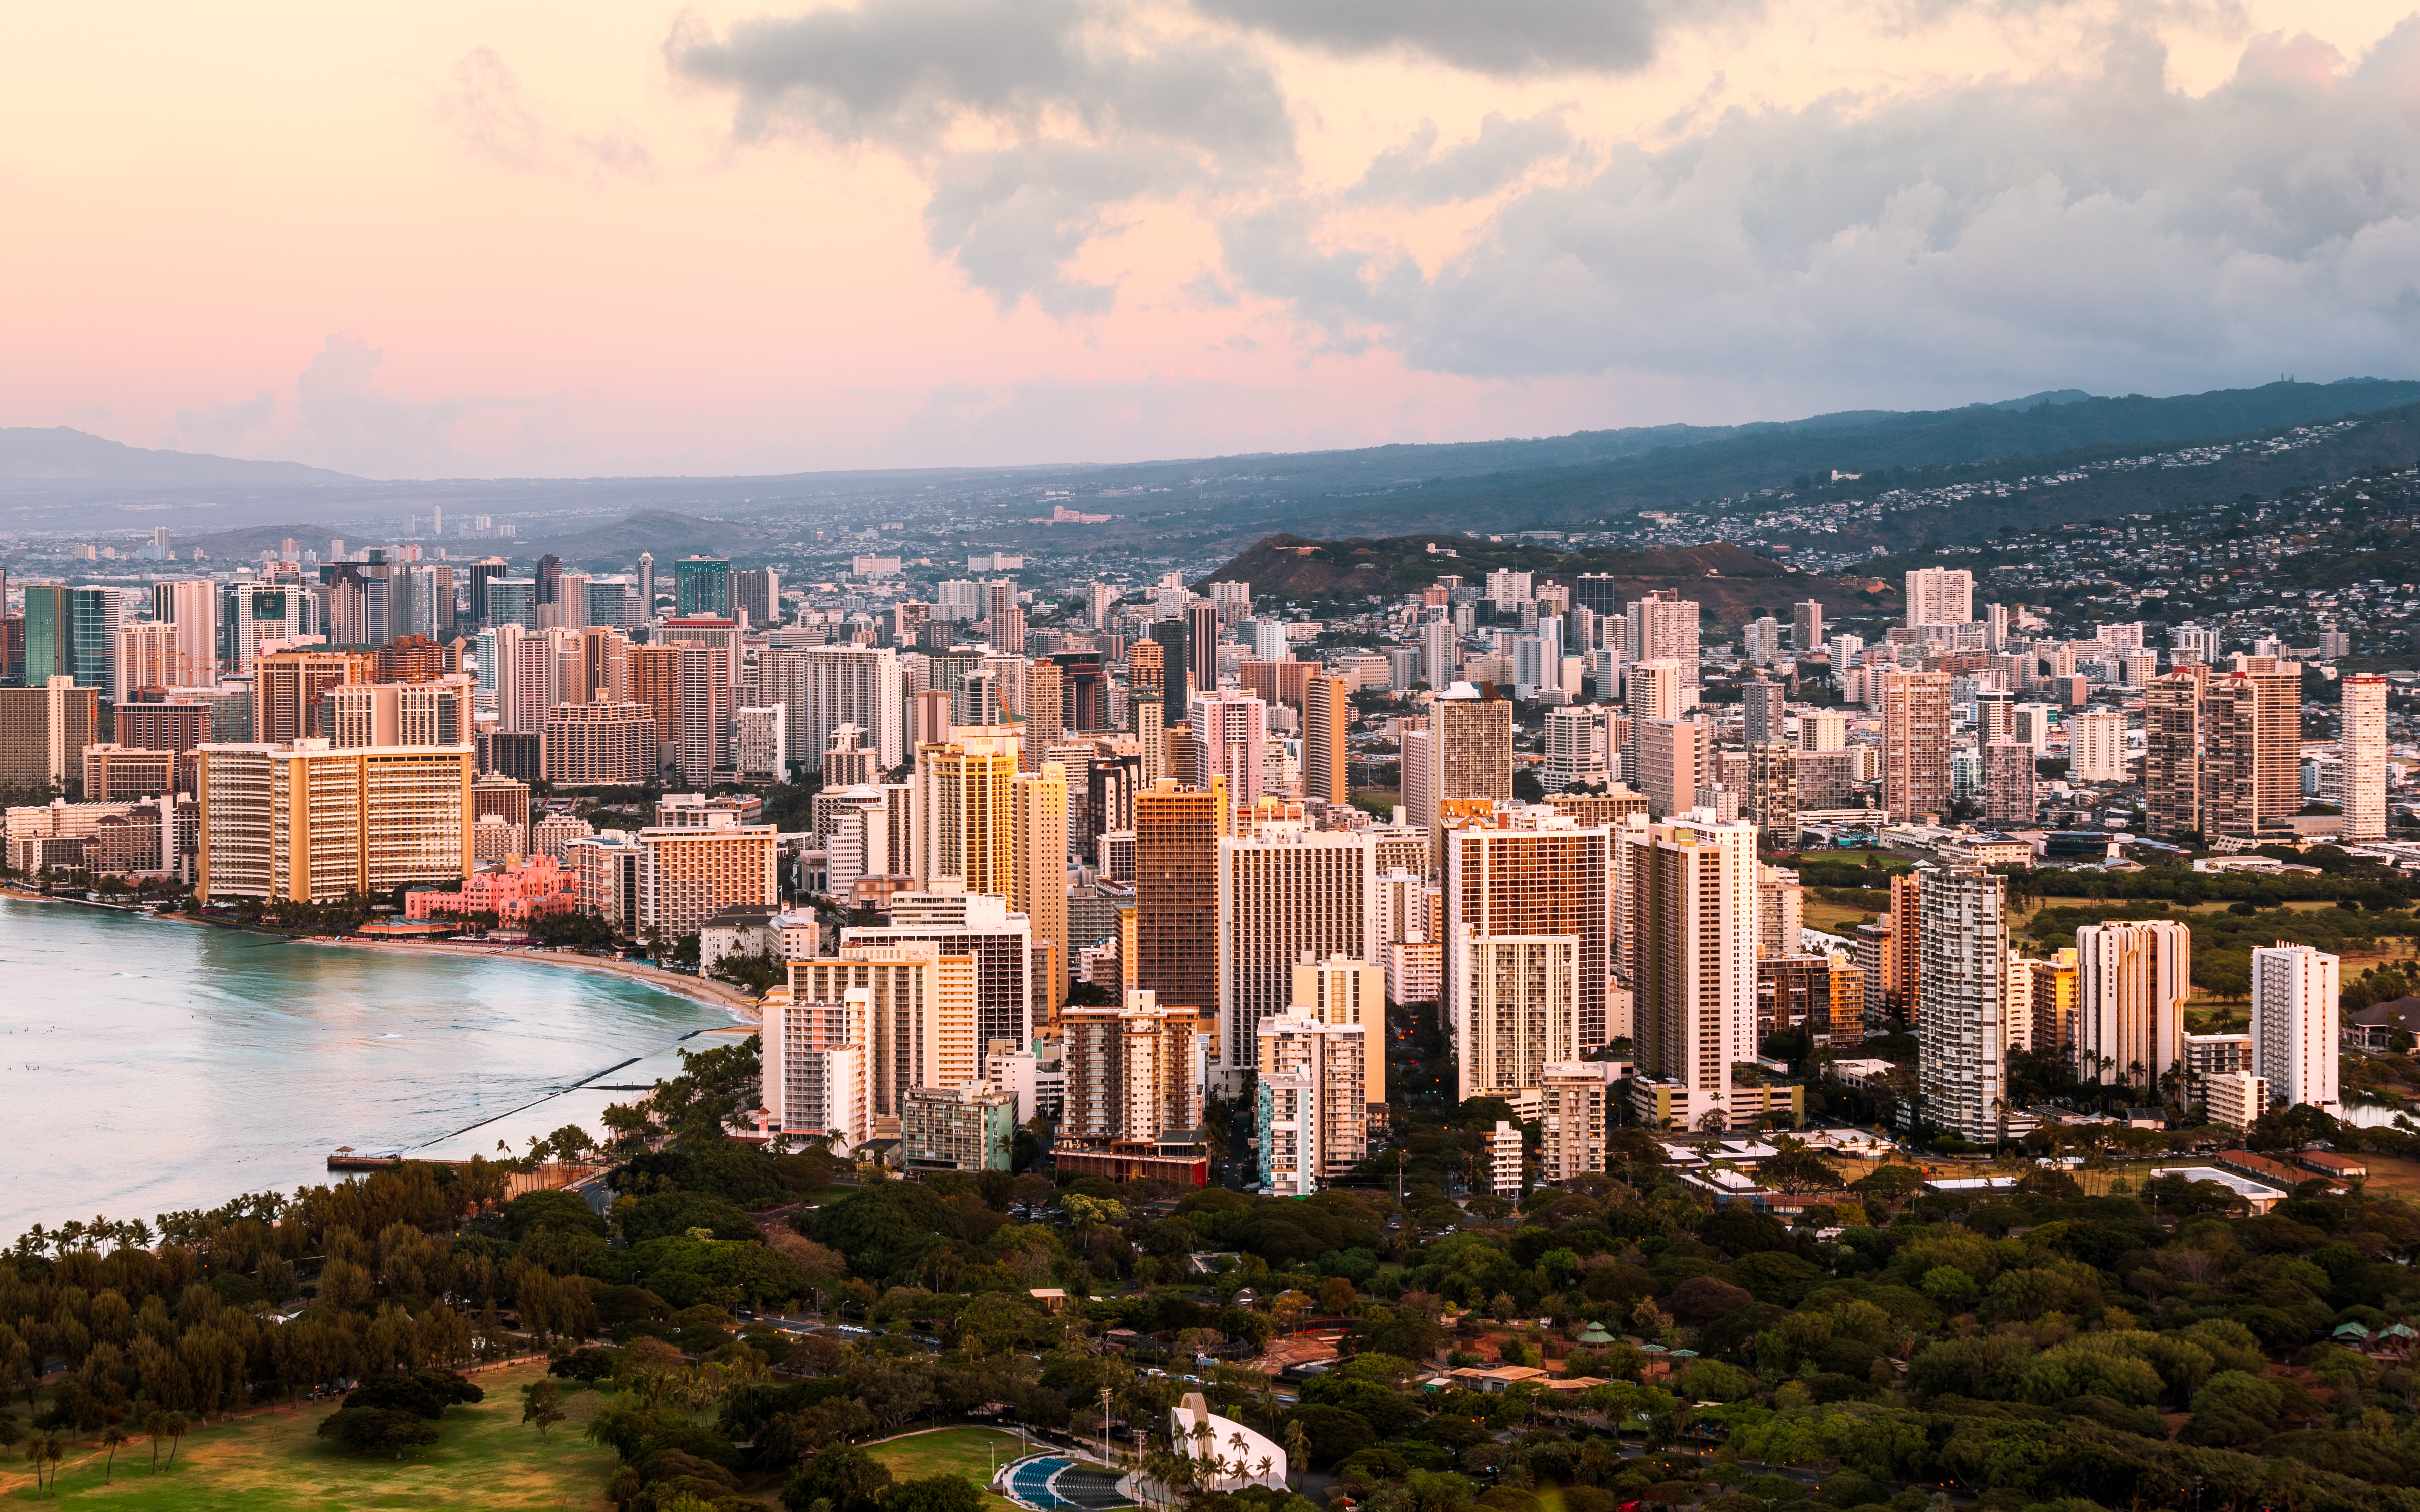 Honolulu skyline featuring high-rises and mountains in the distance.